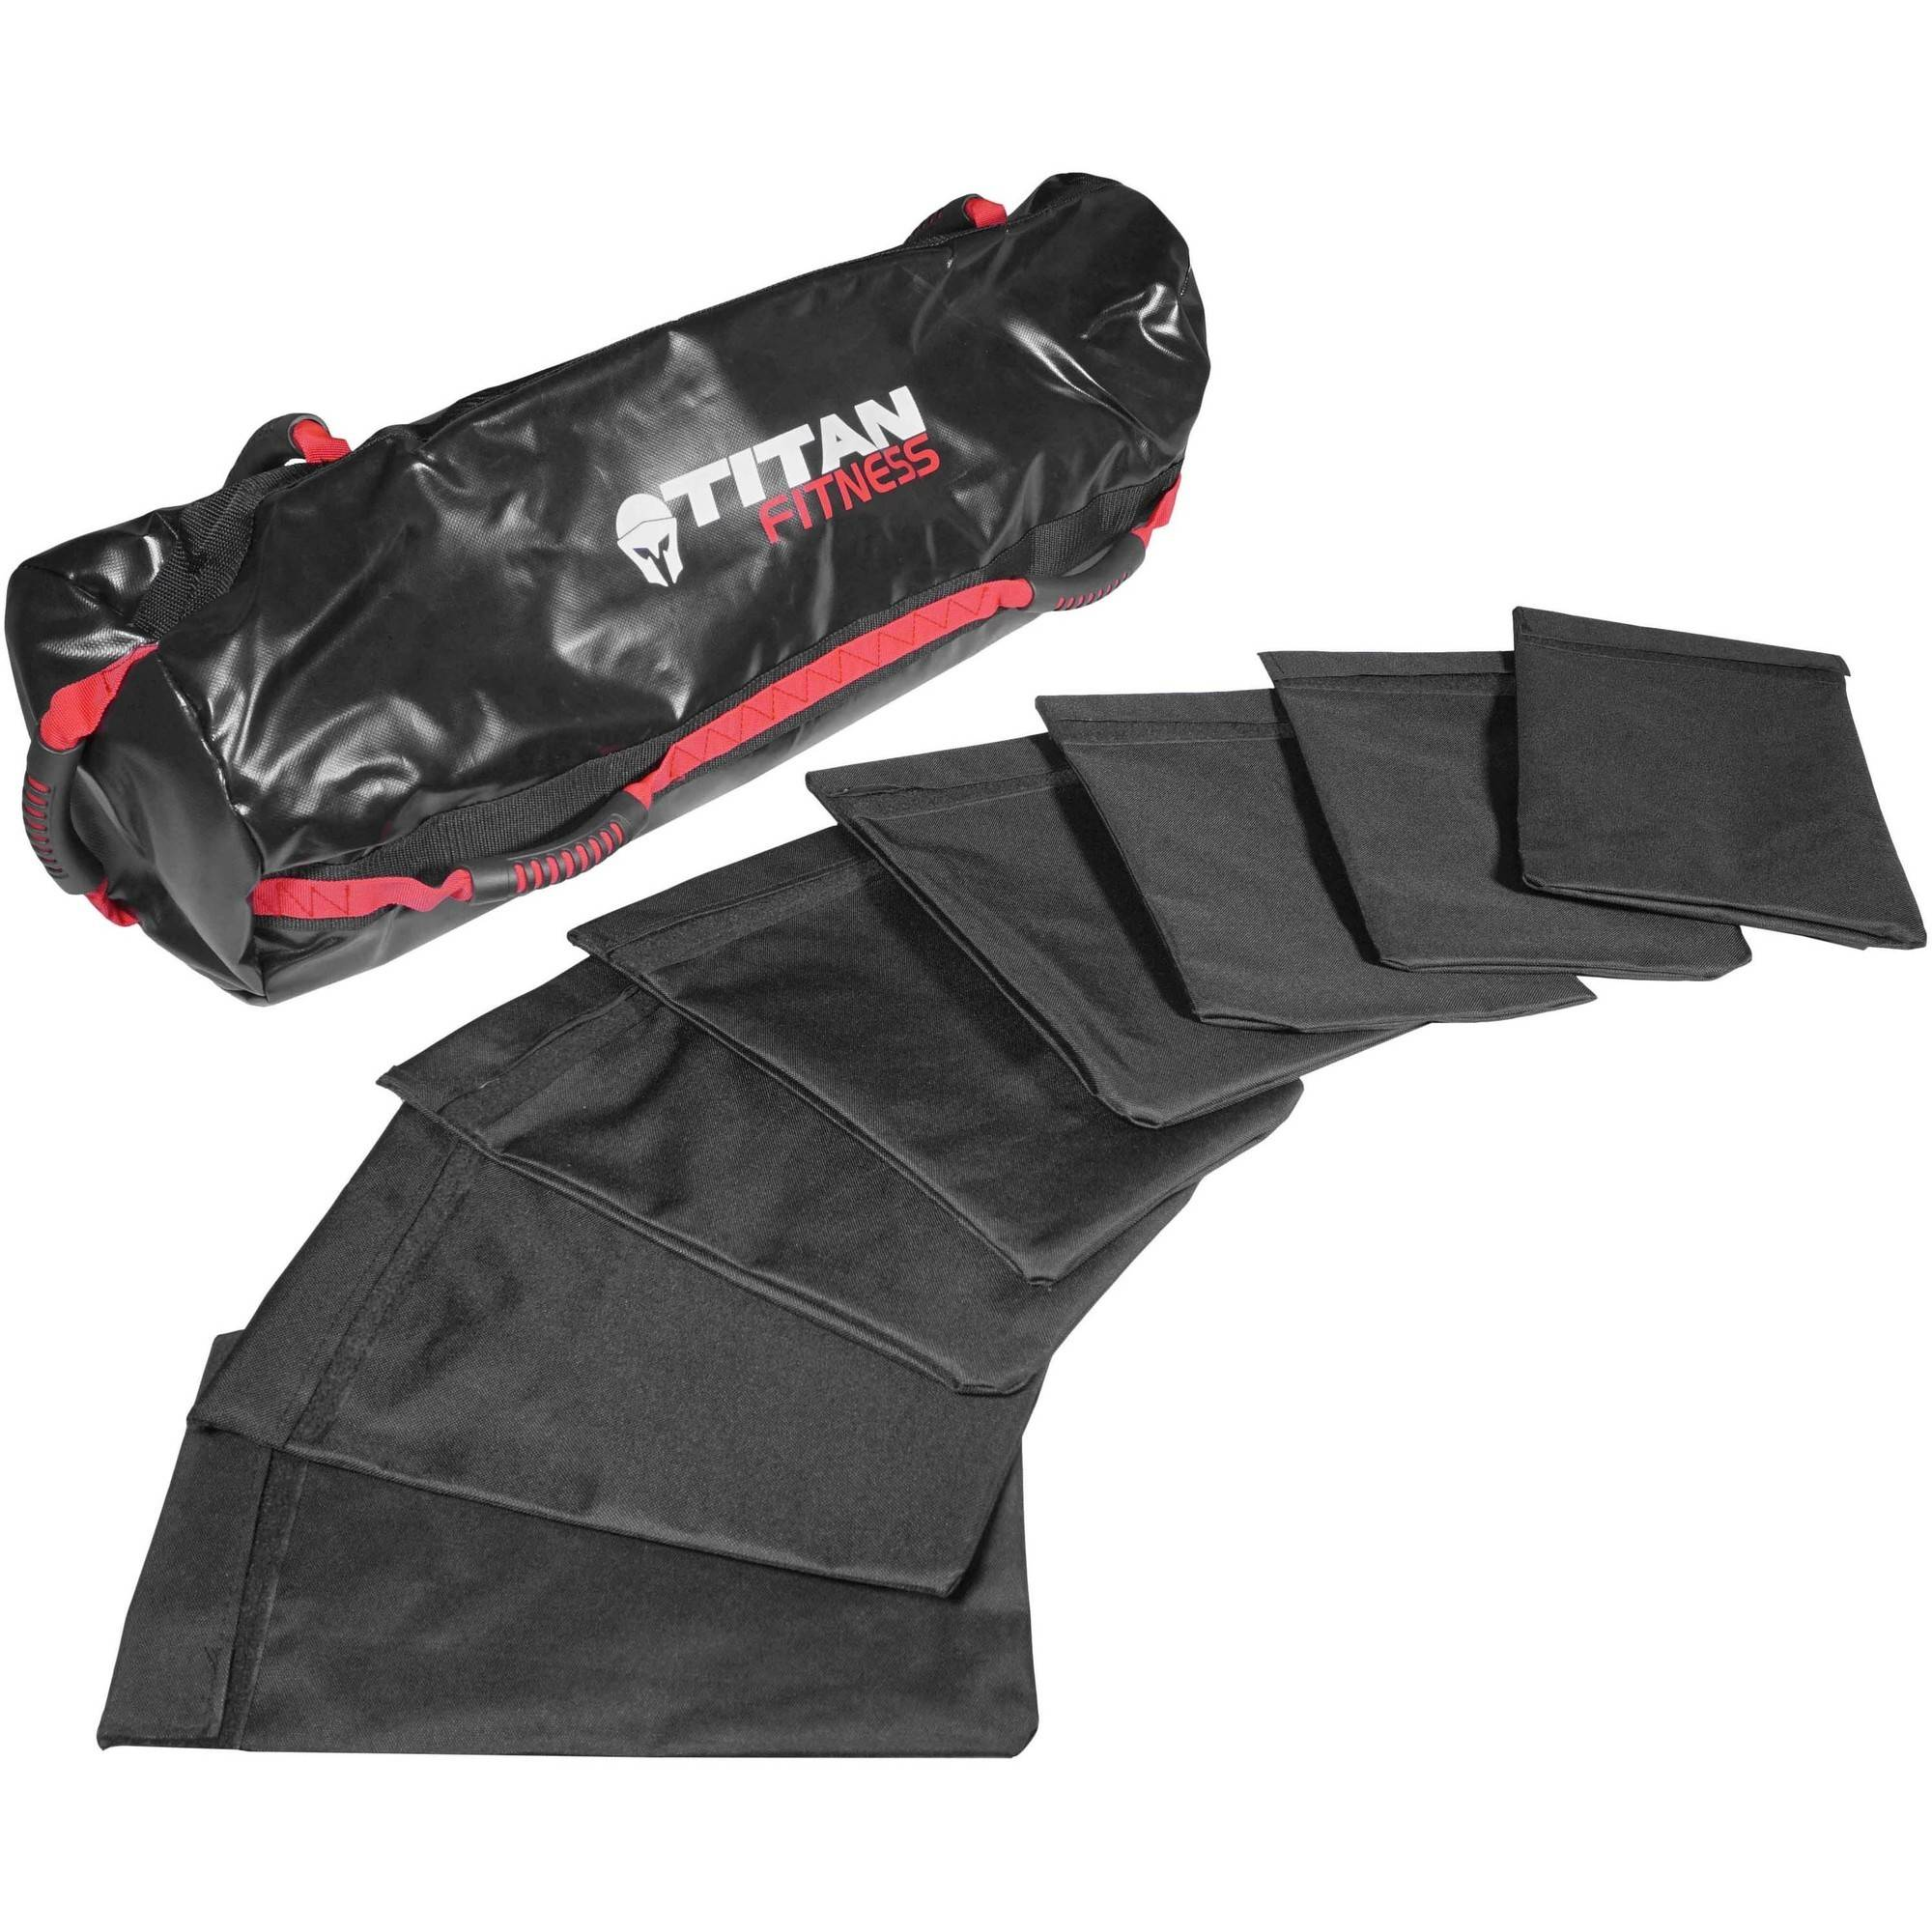 Titan Fitness 100 lb Heavy Duty Workout Weight Sandbag Exercise Training Bag